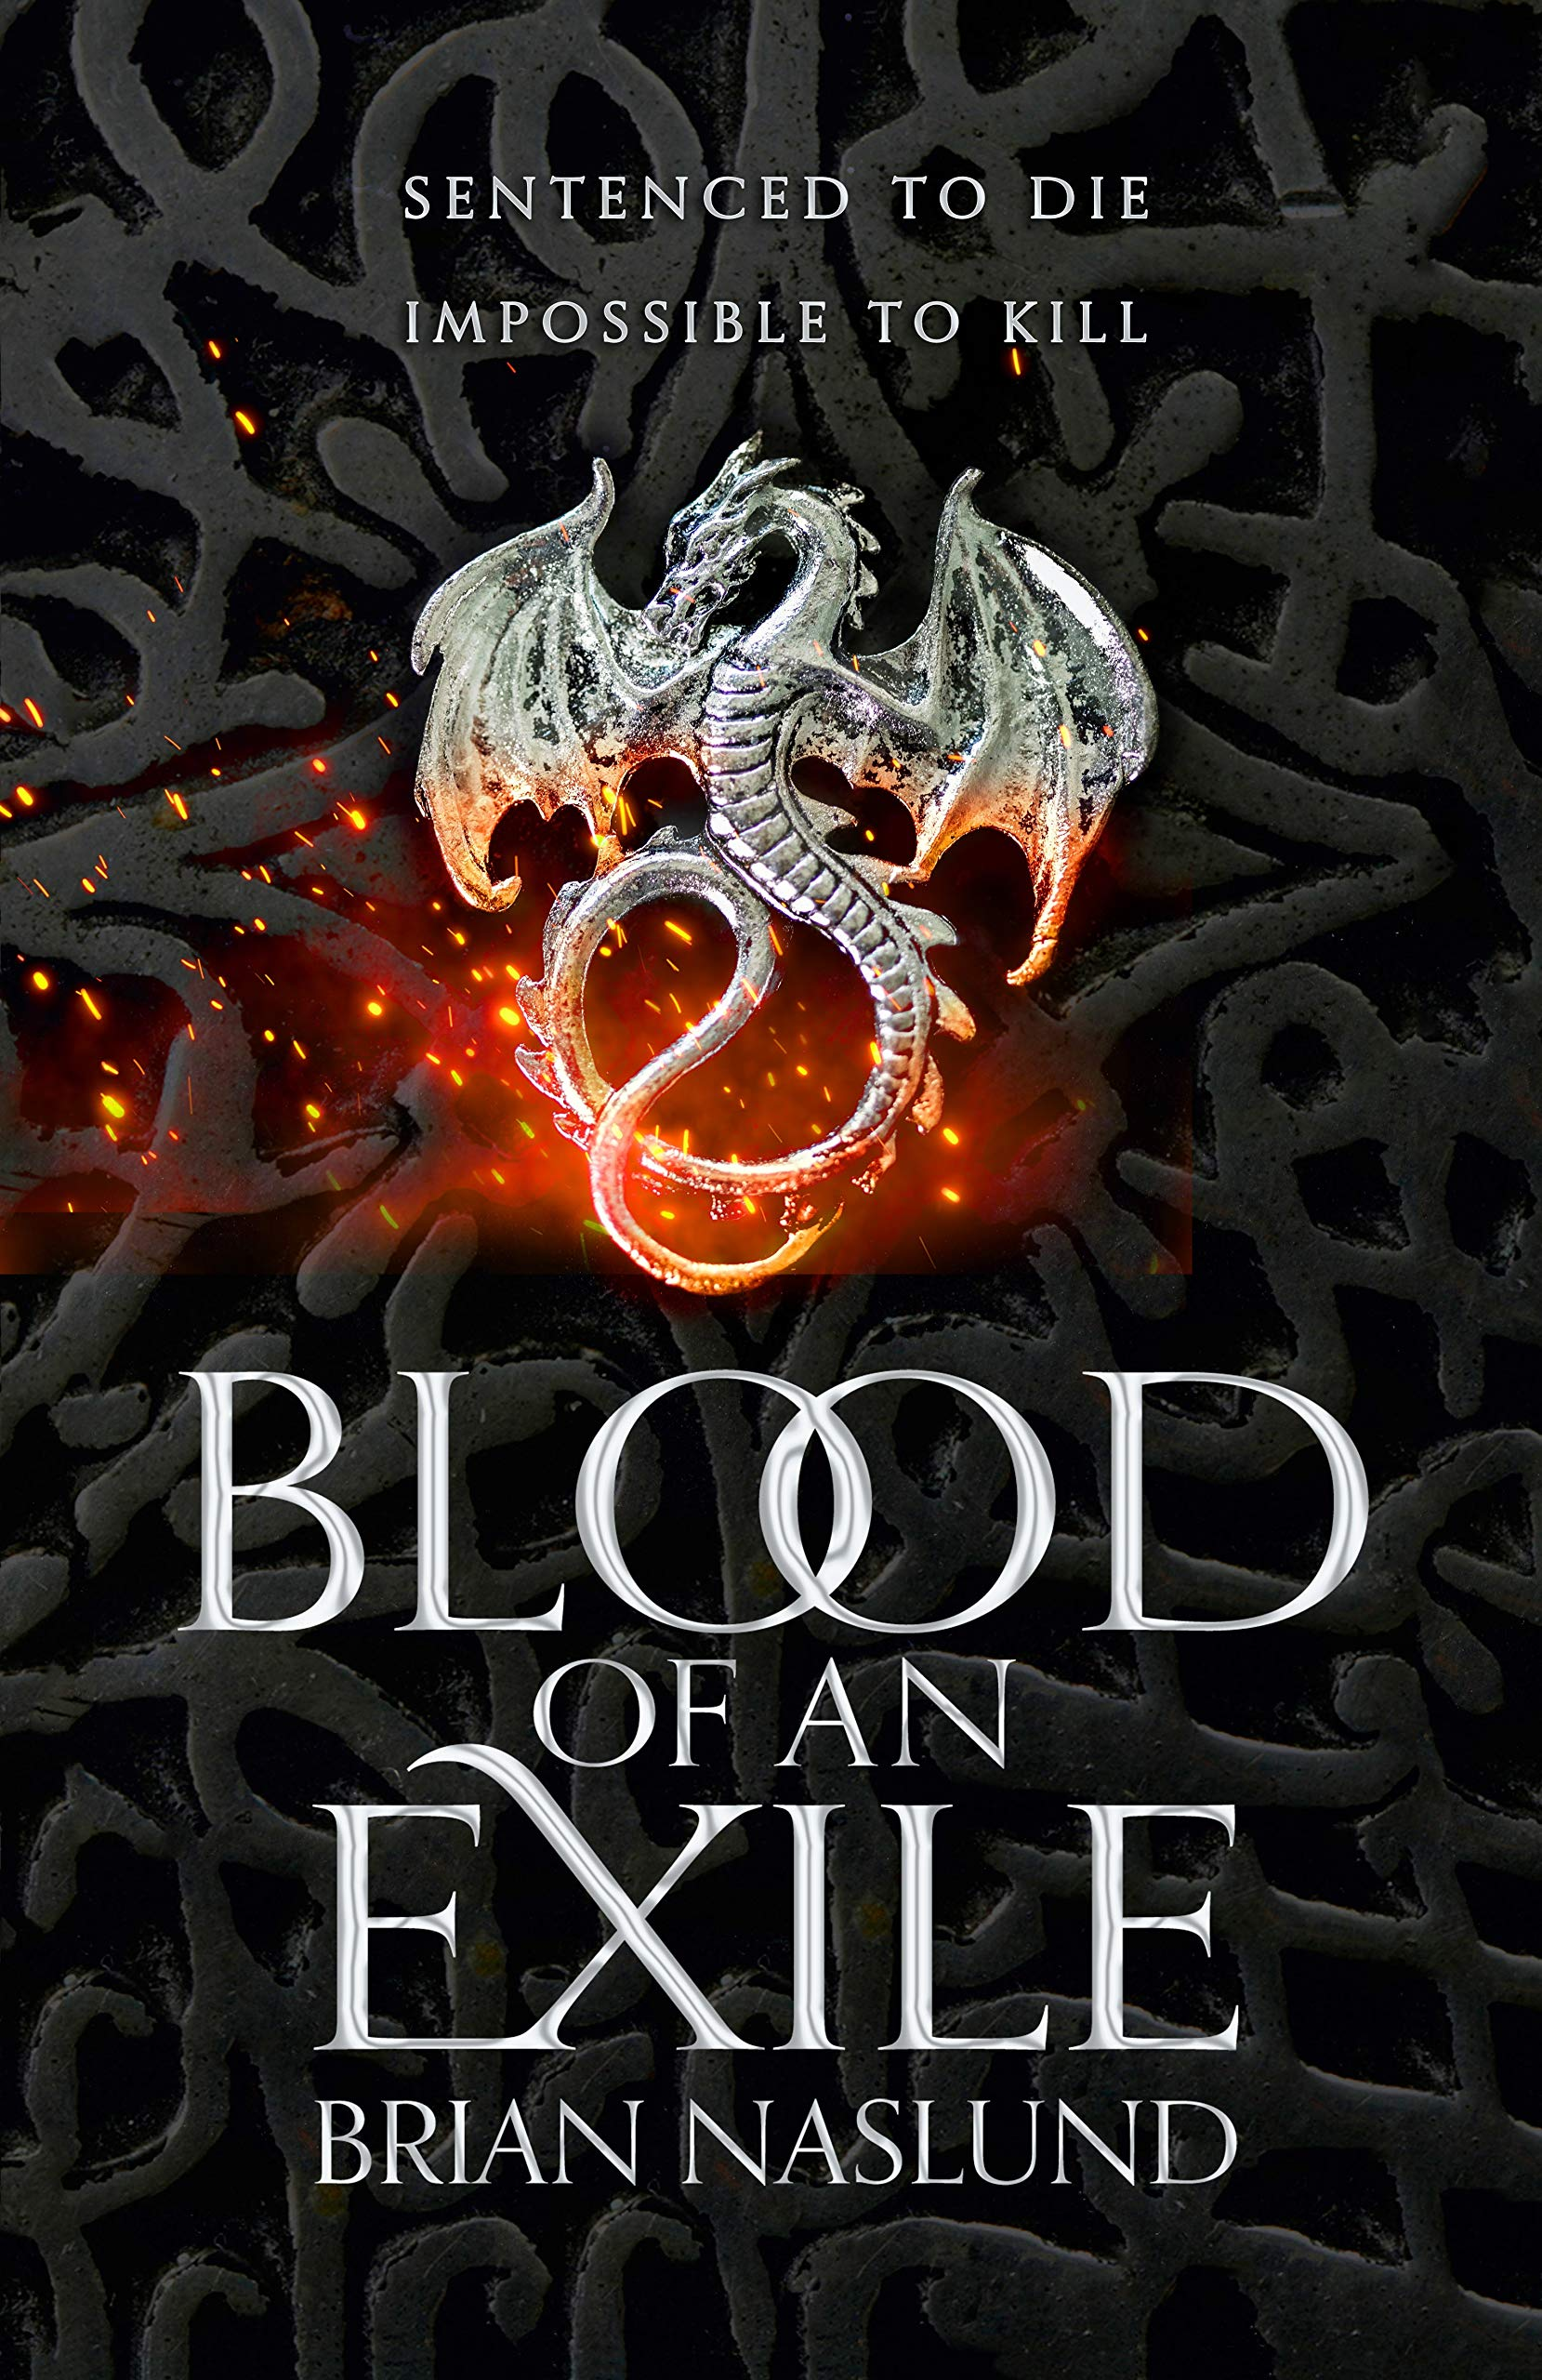 Blood of an Exile (Dragons of Terra): Amazon.co.uk: Naslund, Brian:  9781529016123: Books